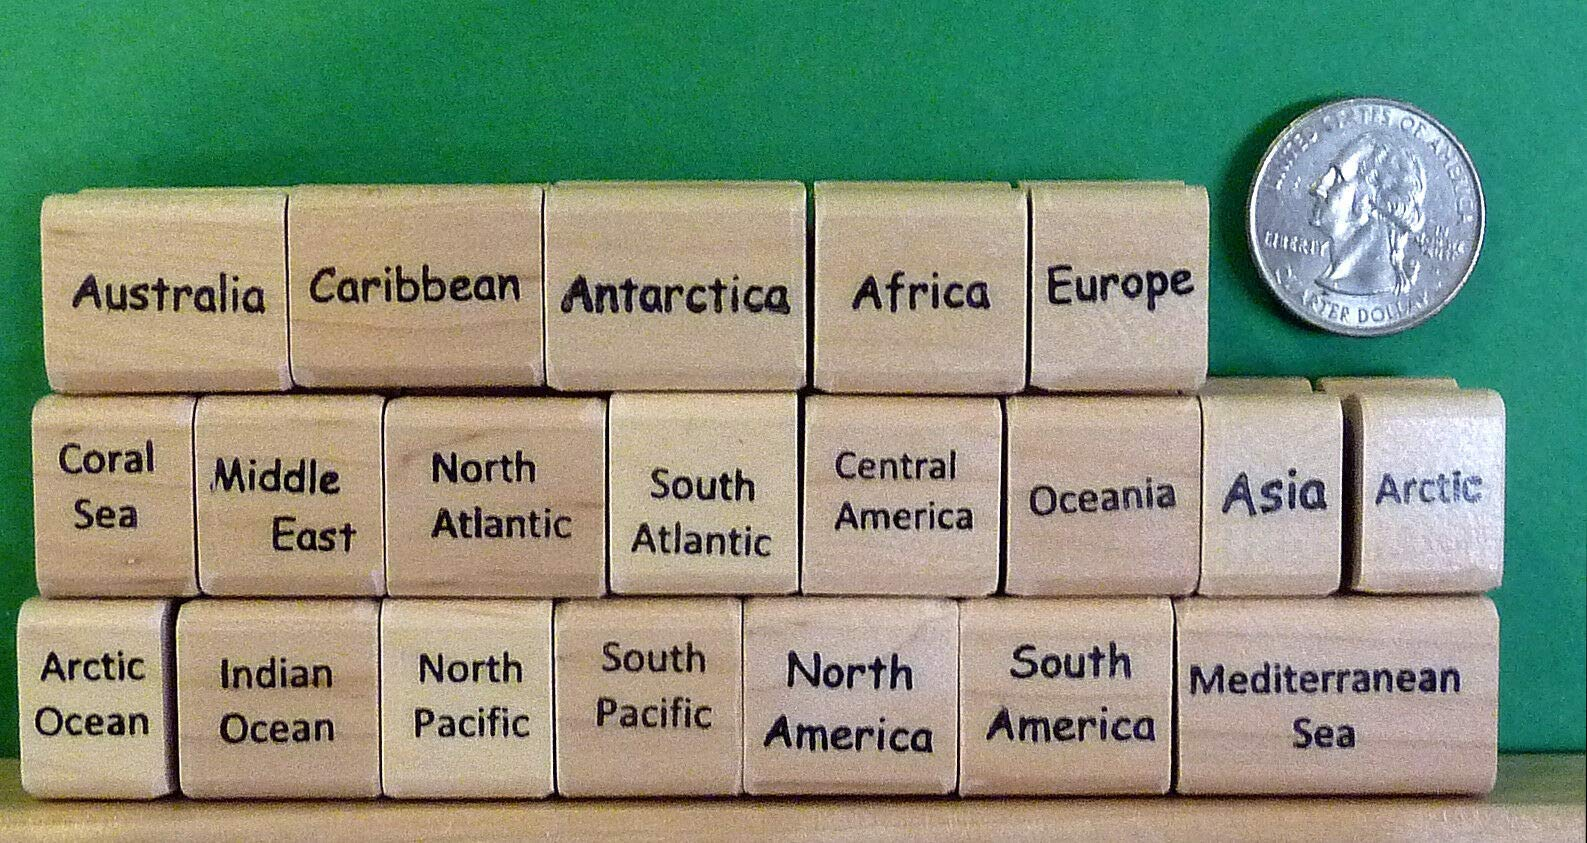 Continents Supplemental Rubber Stamp Set No. 1, Qty 20 - Rubber Stamp Wood Carving Blocks by Wooden Stamps